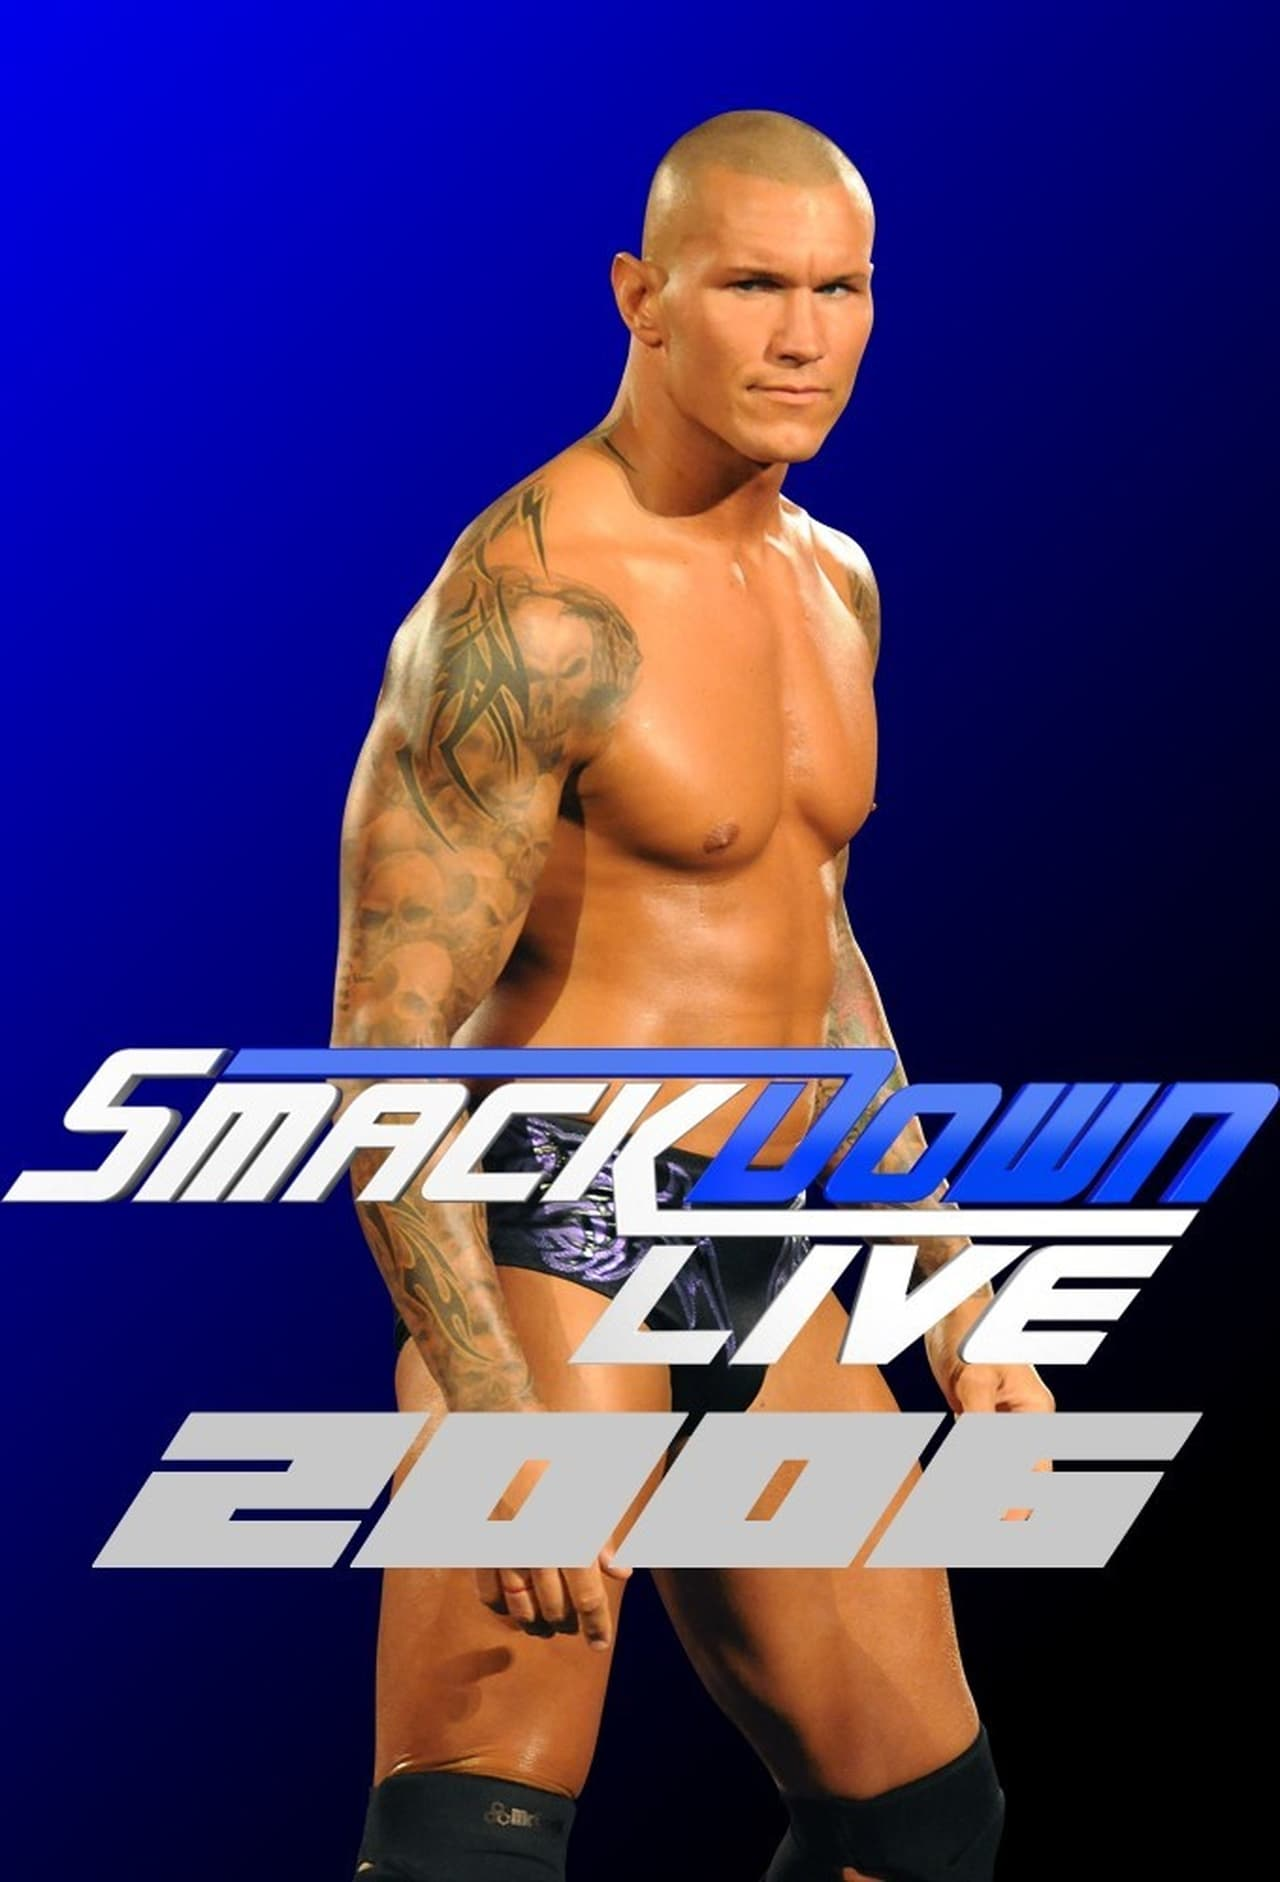 Putlocker Wwe Smackdown Live Season 8 (2006)